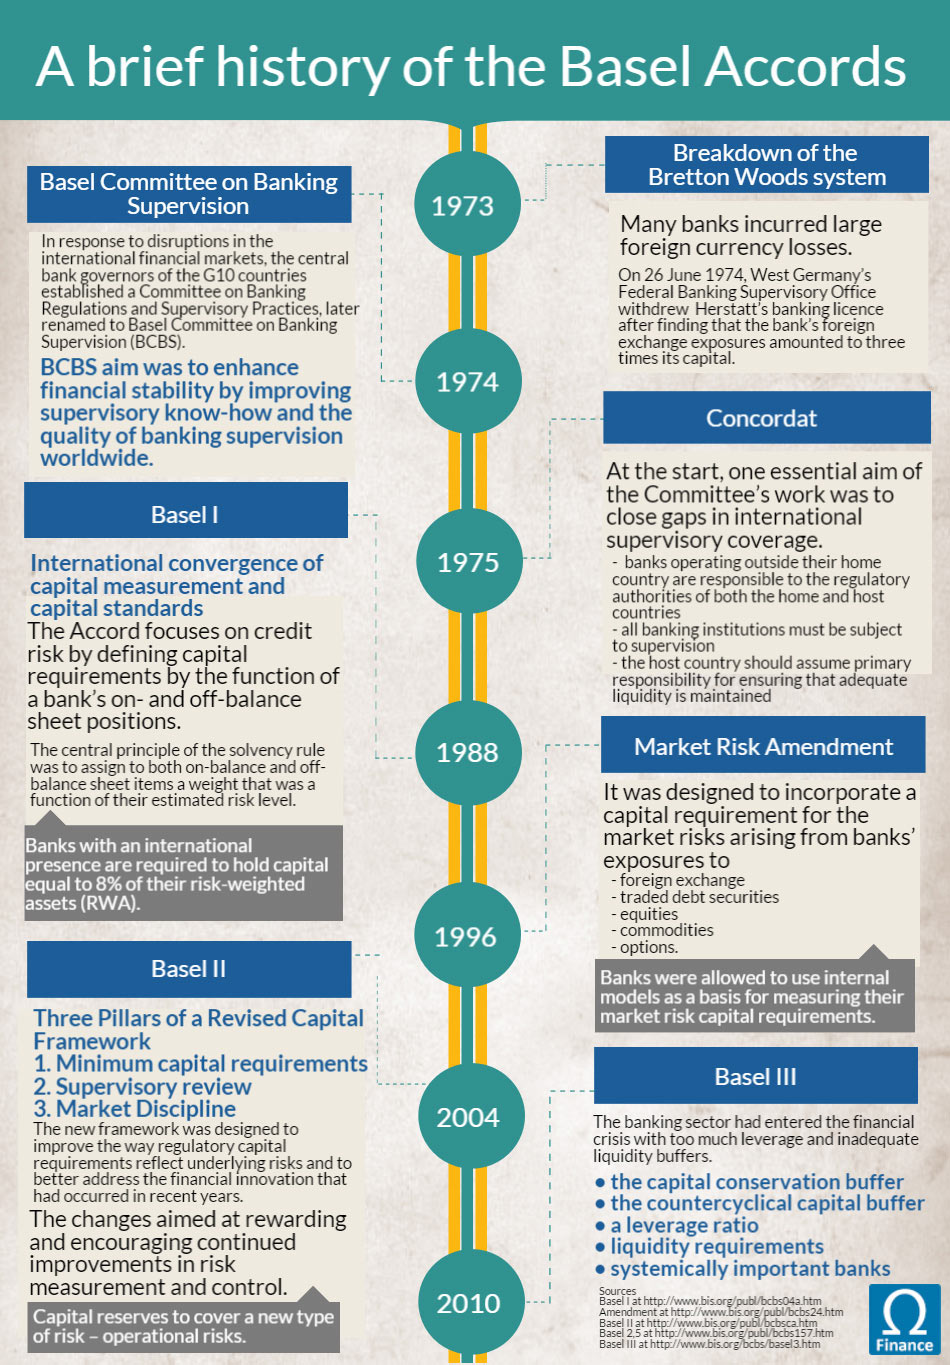 A brief history of the Basel Accords